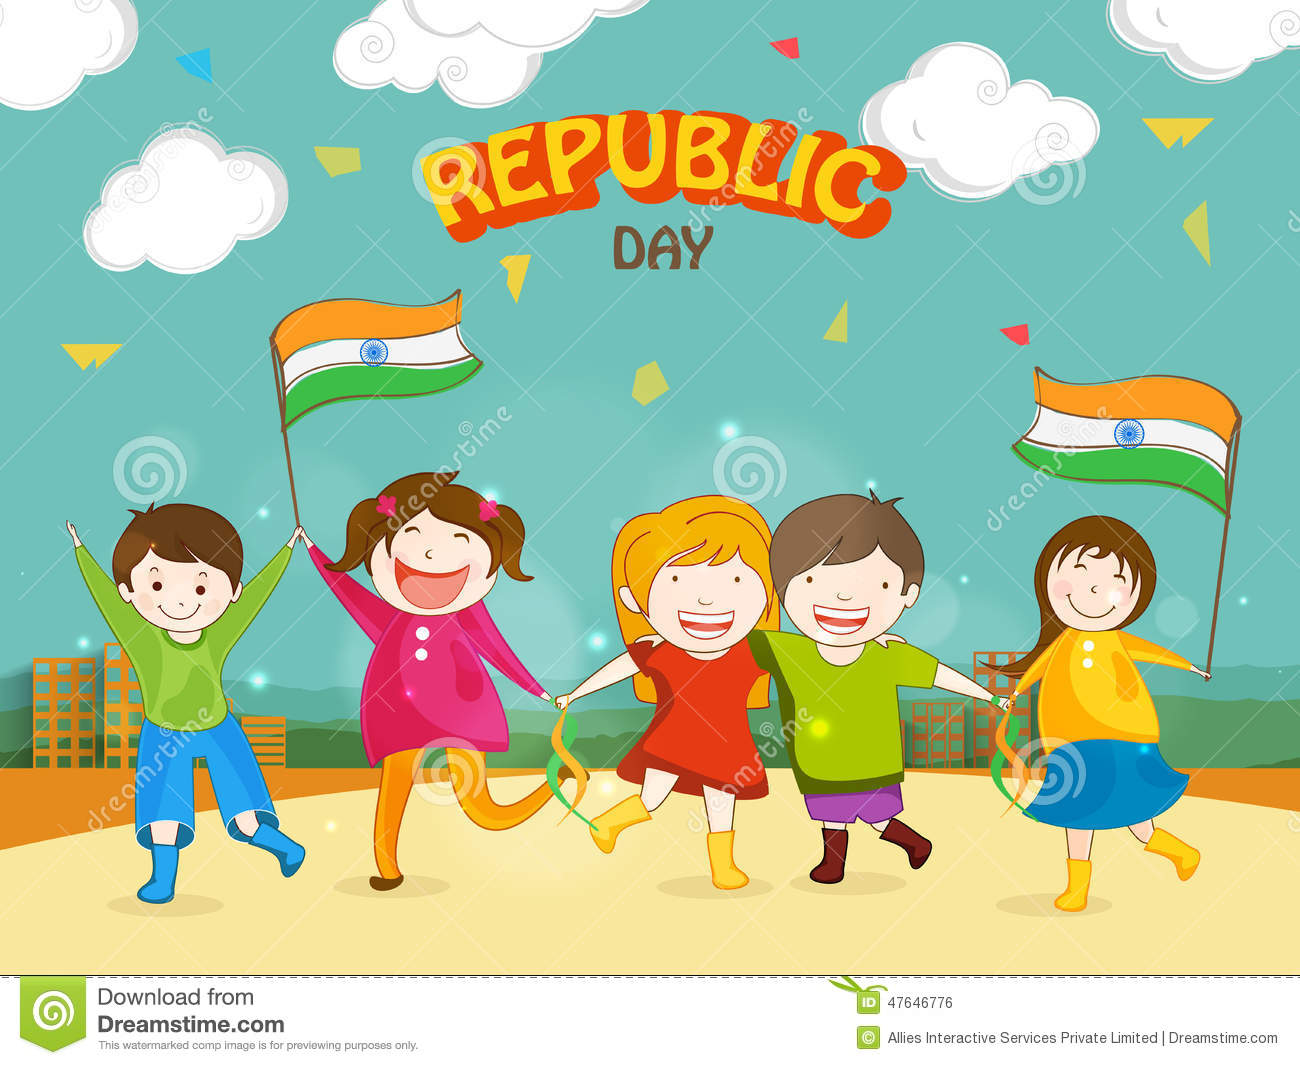 Easy Drawing For Republic Day Republic Day Easy Drawing